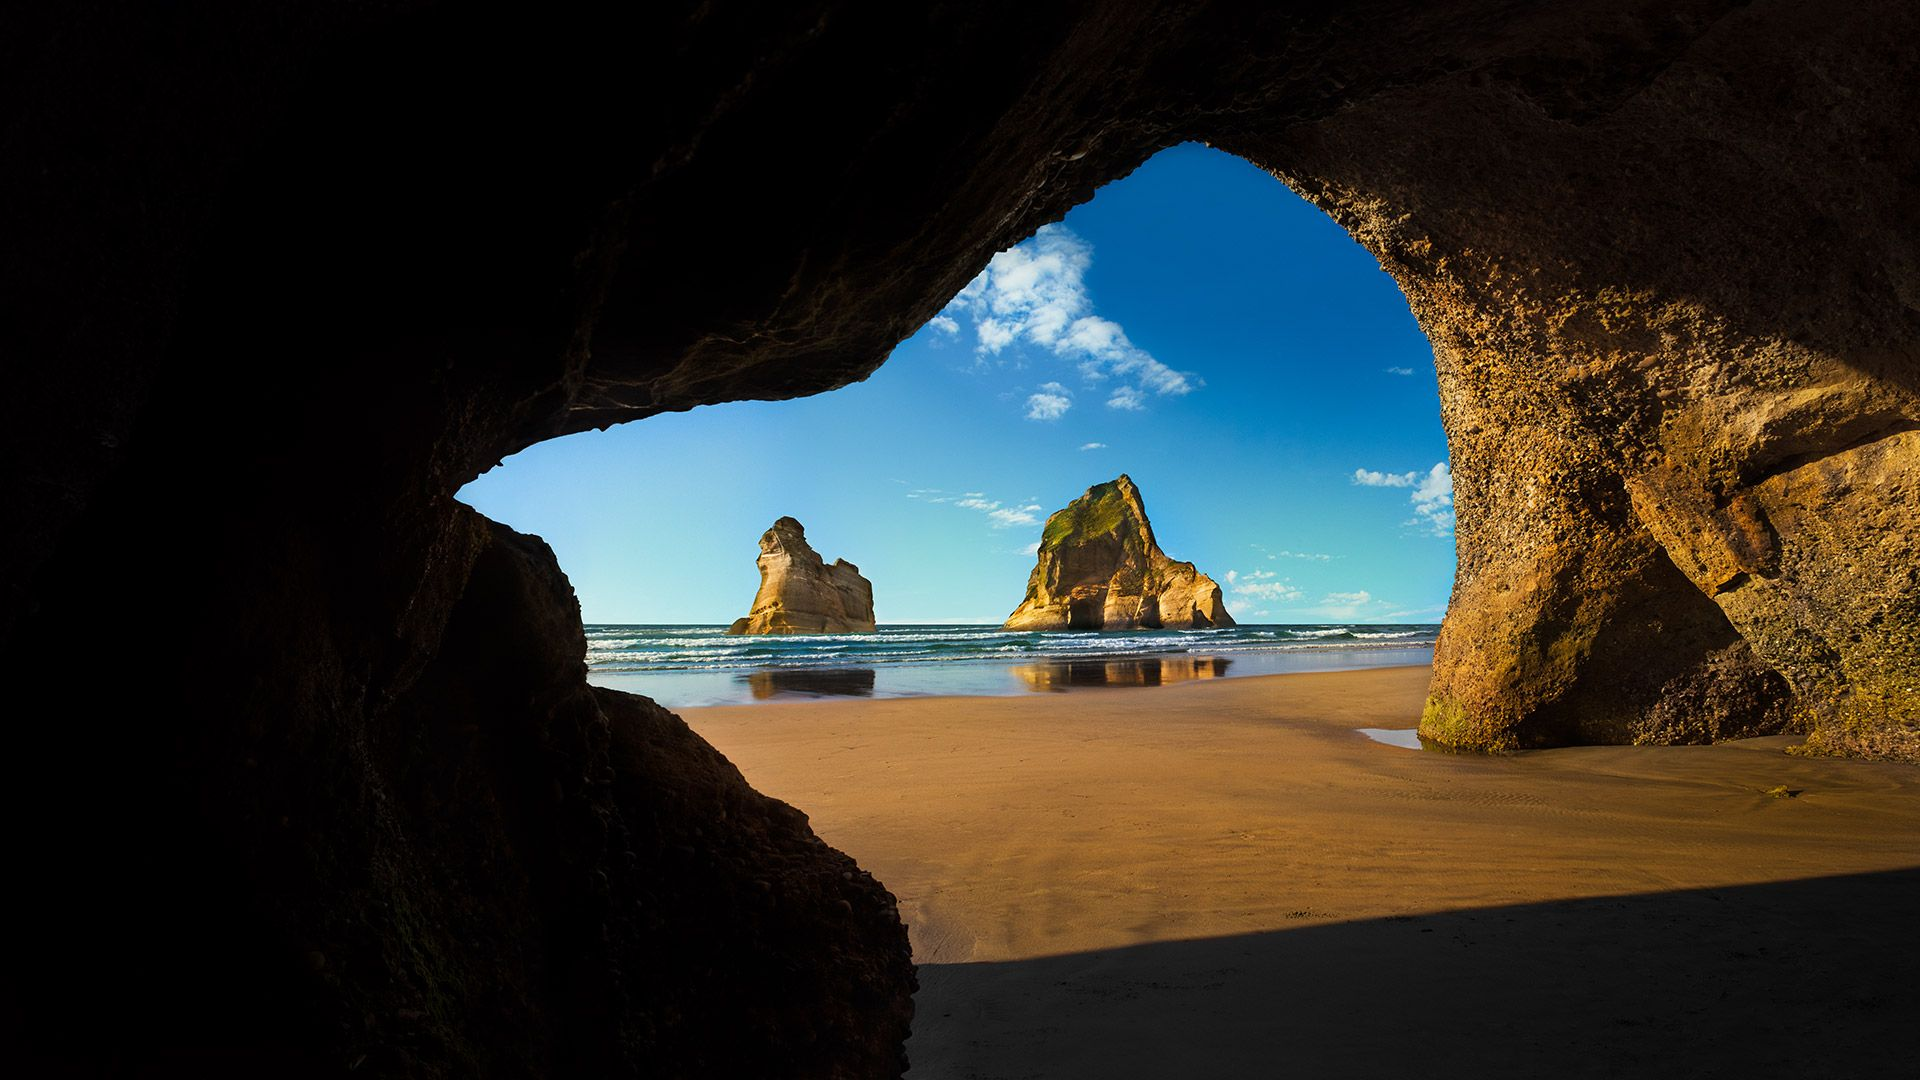 Wharariki Beach Cave Archway Islands South Island Of New Zealand Desktop Wallpaper 1920x1080 Lock Screen Photo Desktop Wallpaper 1920x1080 Windows 10